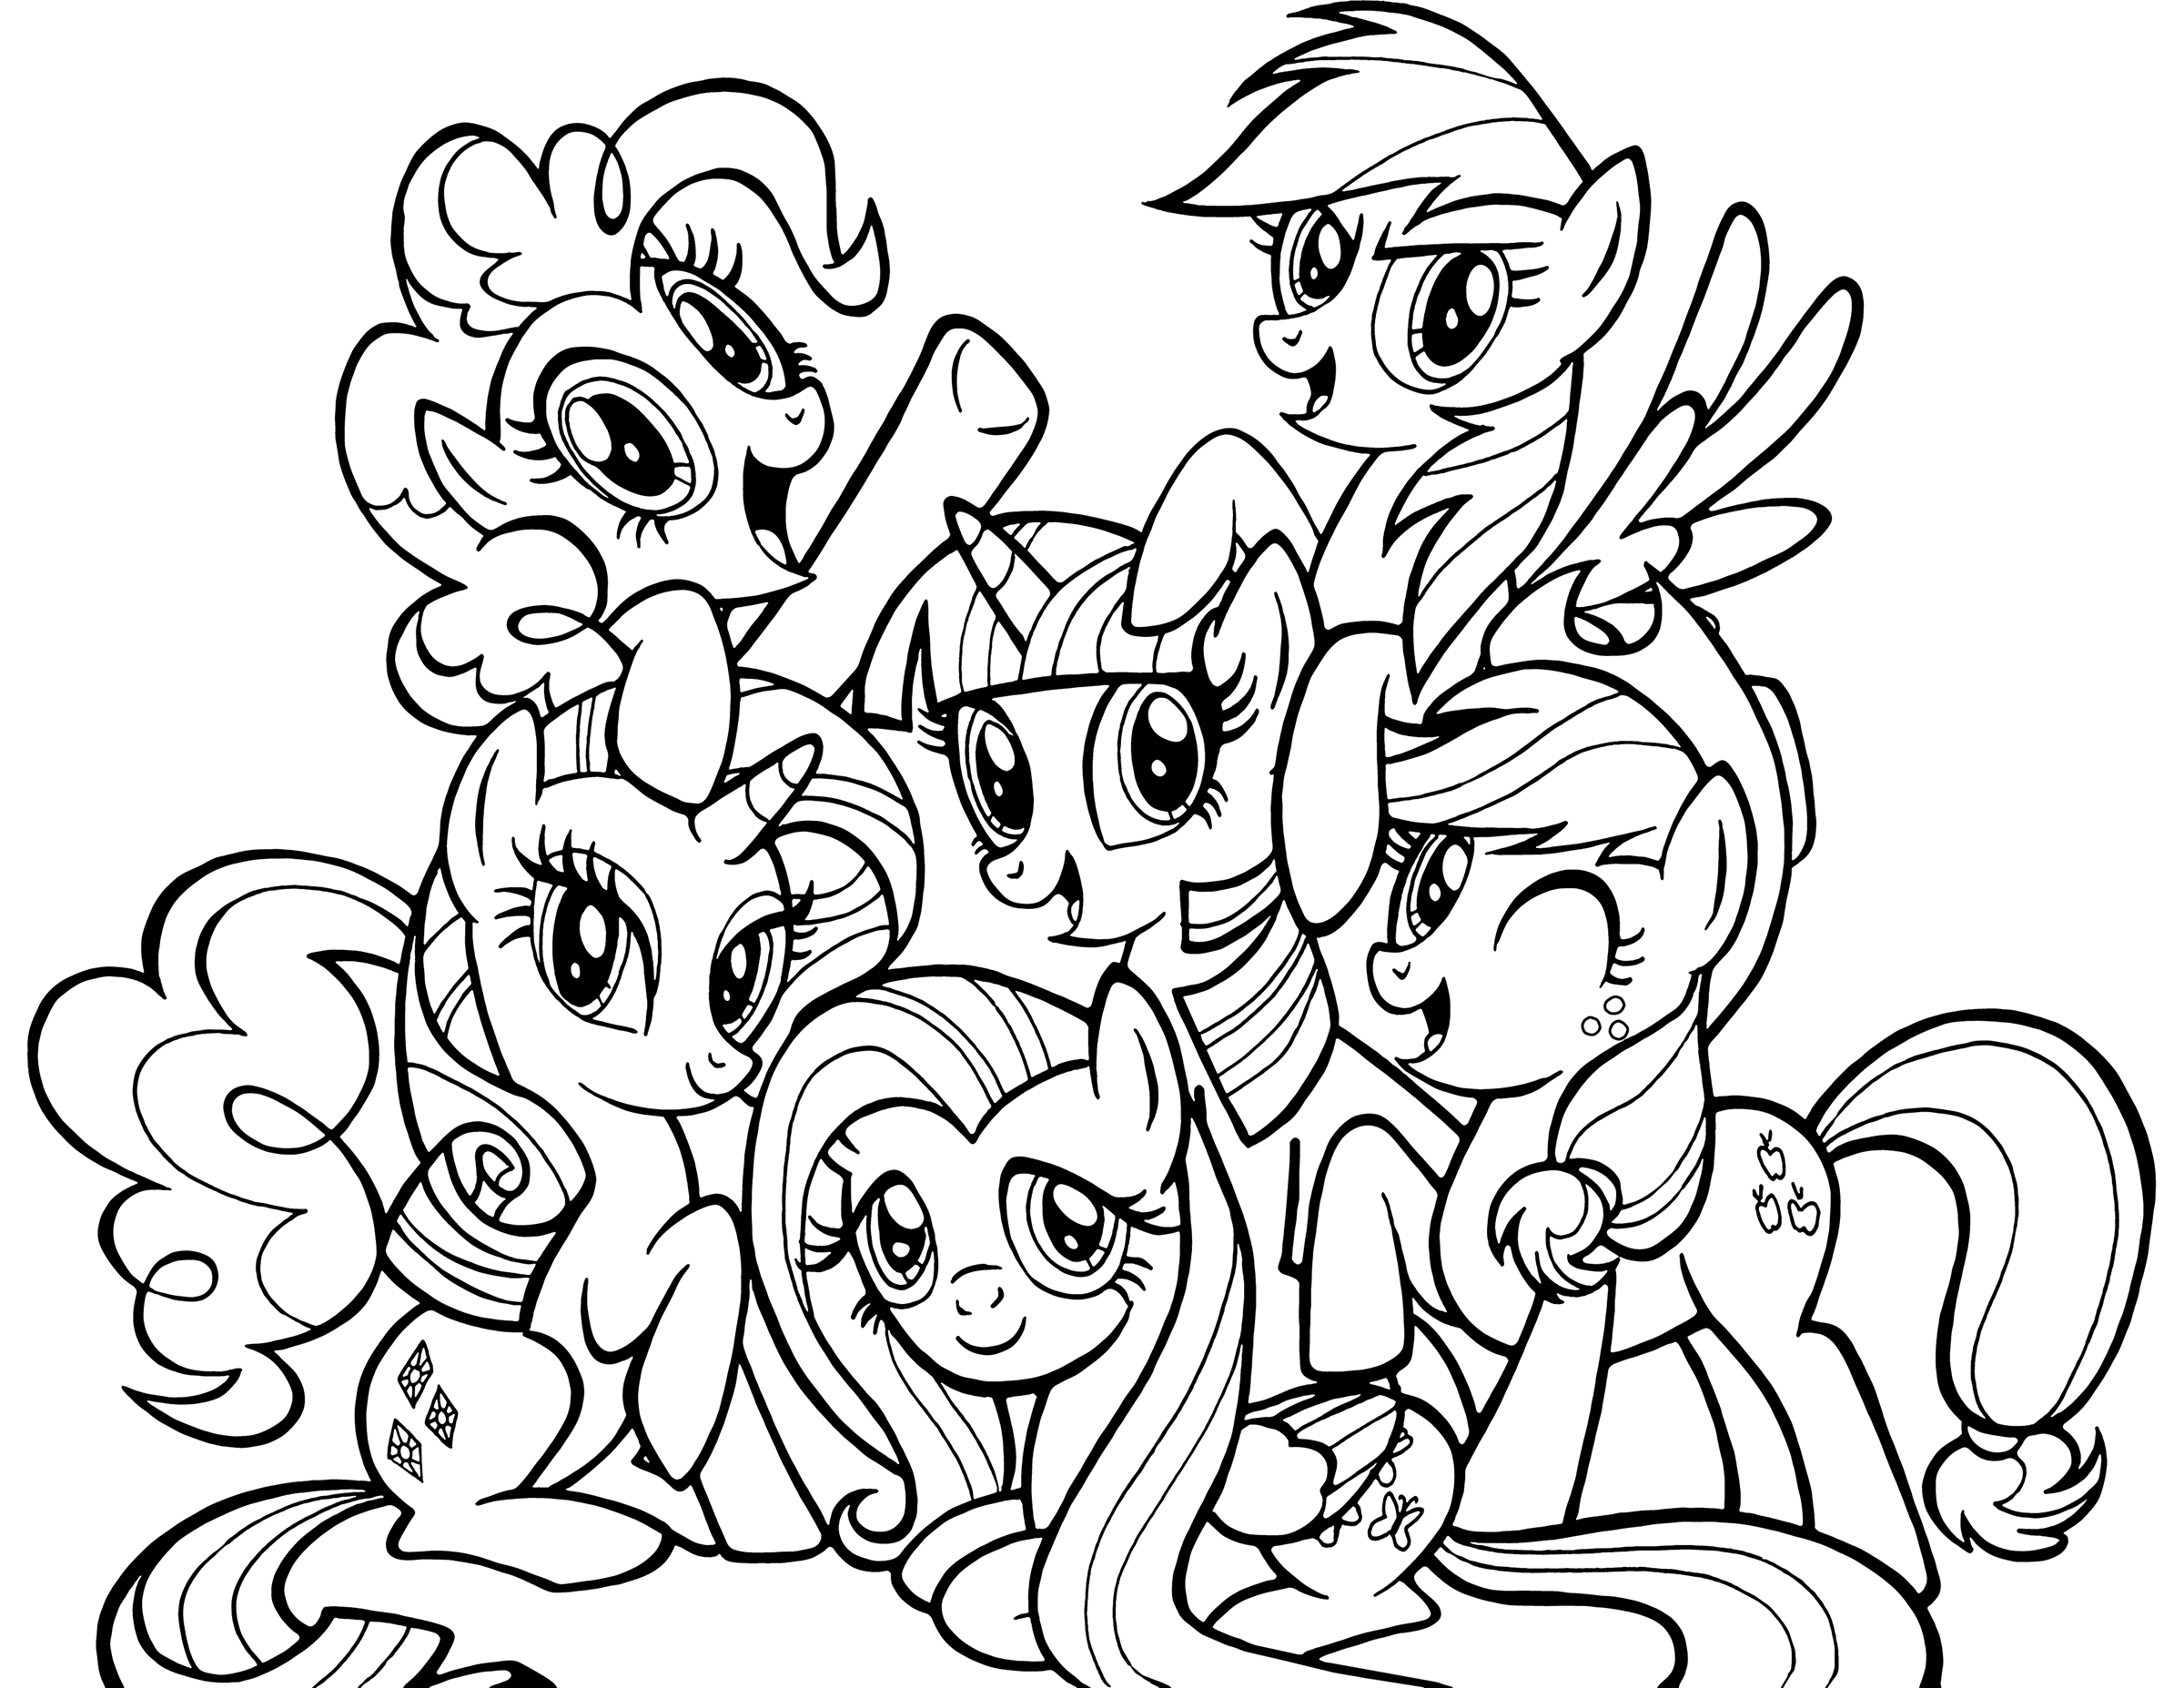 Ponies from Ponyville coloring pages, free printable ...